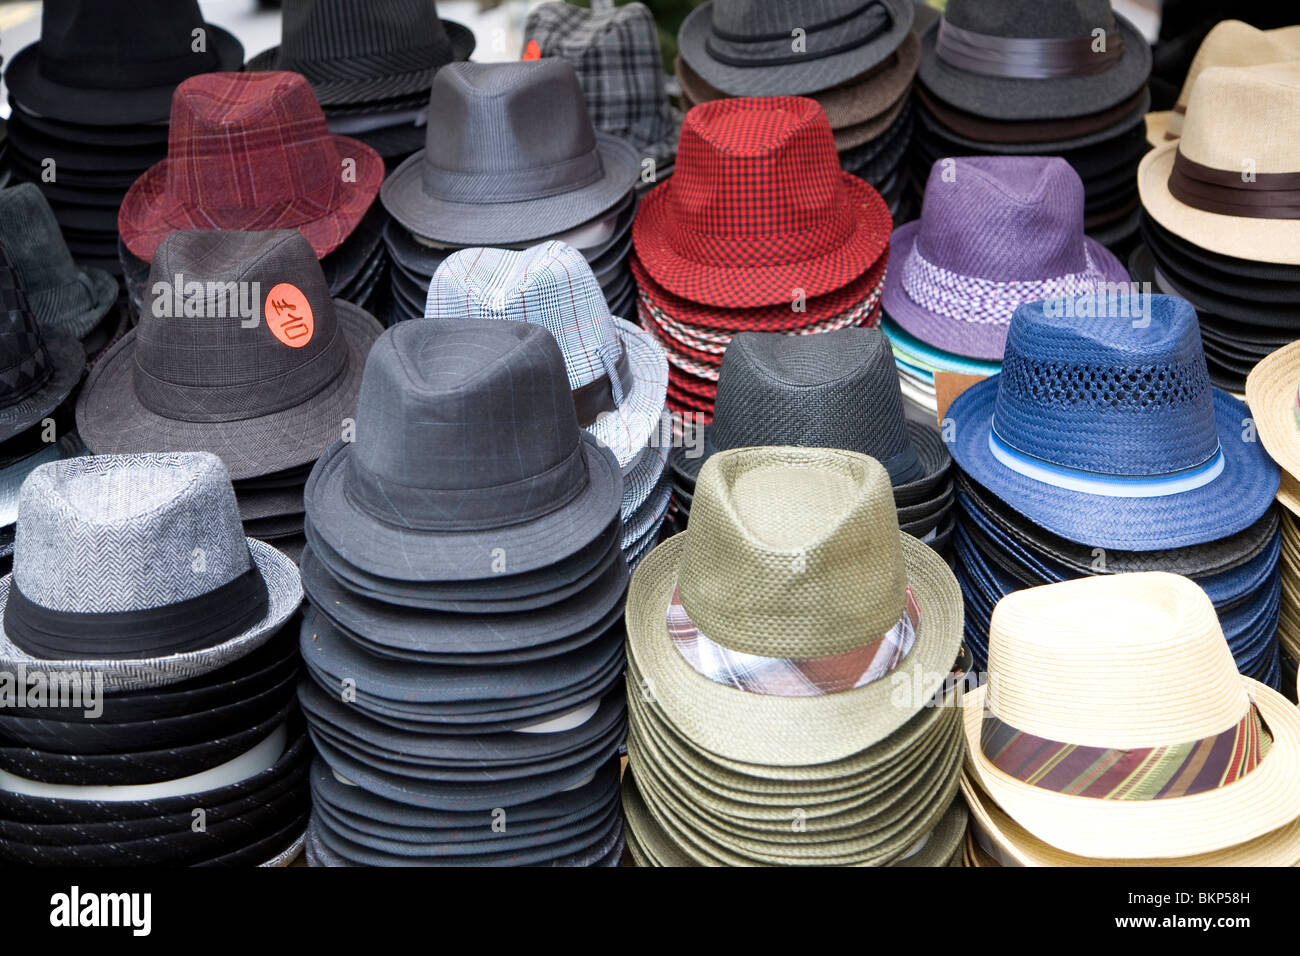 d4bd2110d72e38 Hats for sale on street market stall, London, England · geogphotos / Alamy  Stock Photo